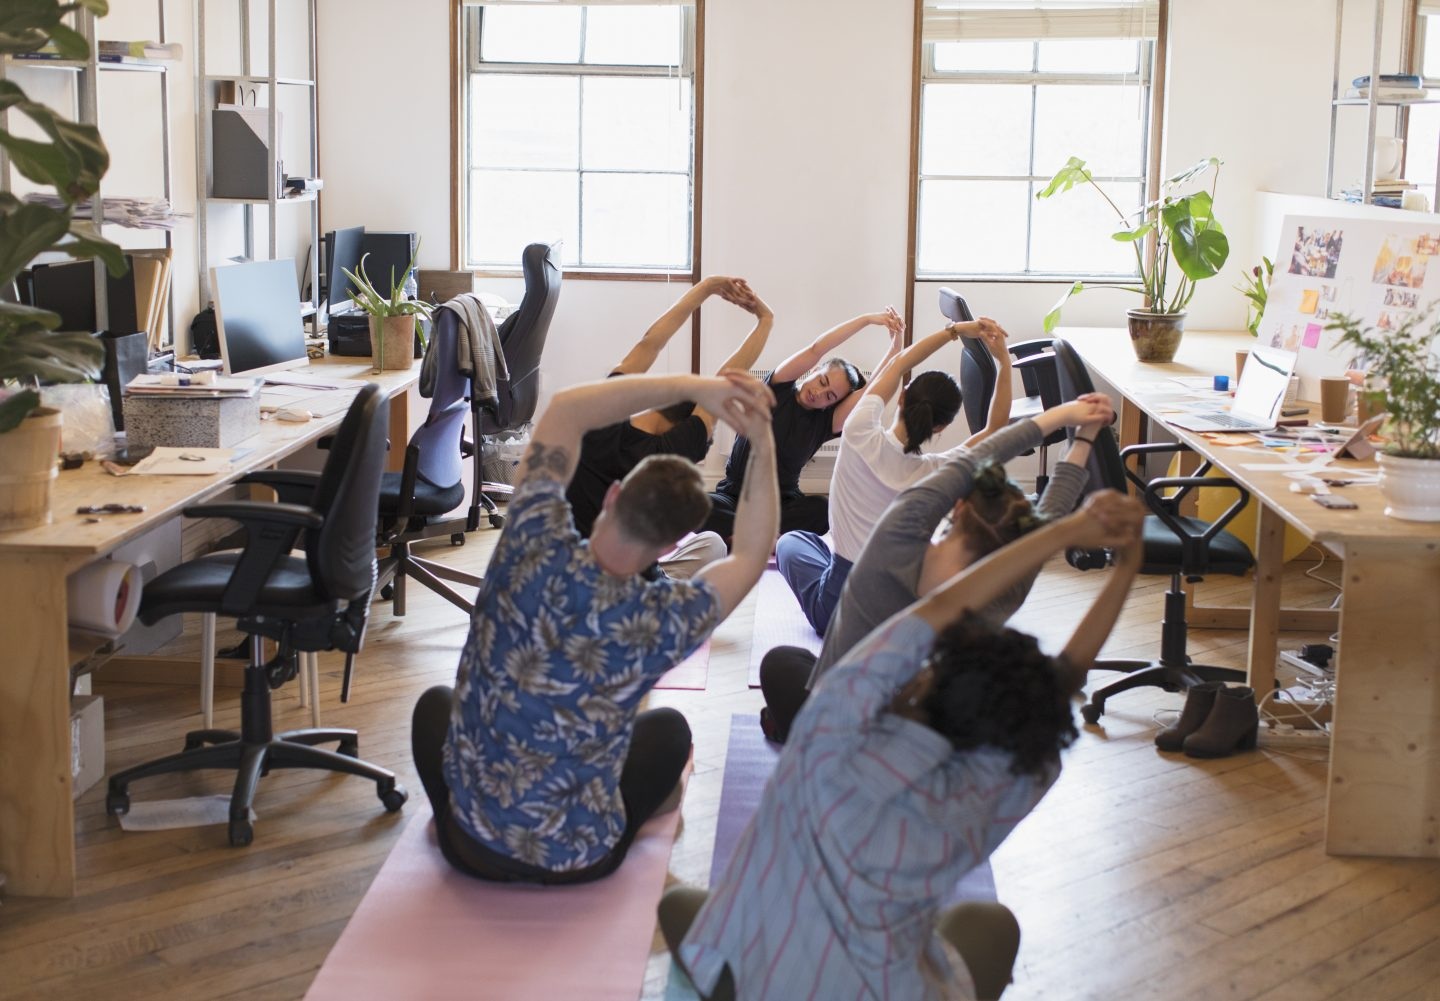 Creative business people stretching, practicing yoga as part of their employers wellness program in the office.